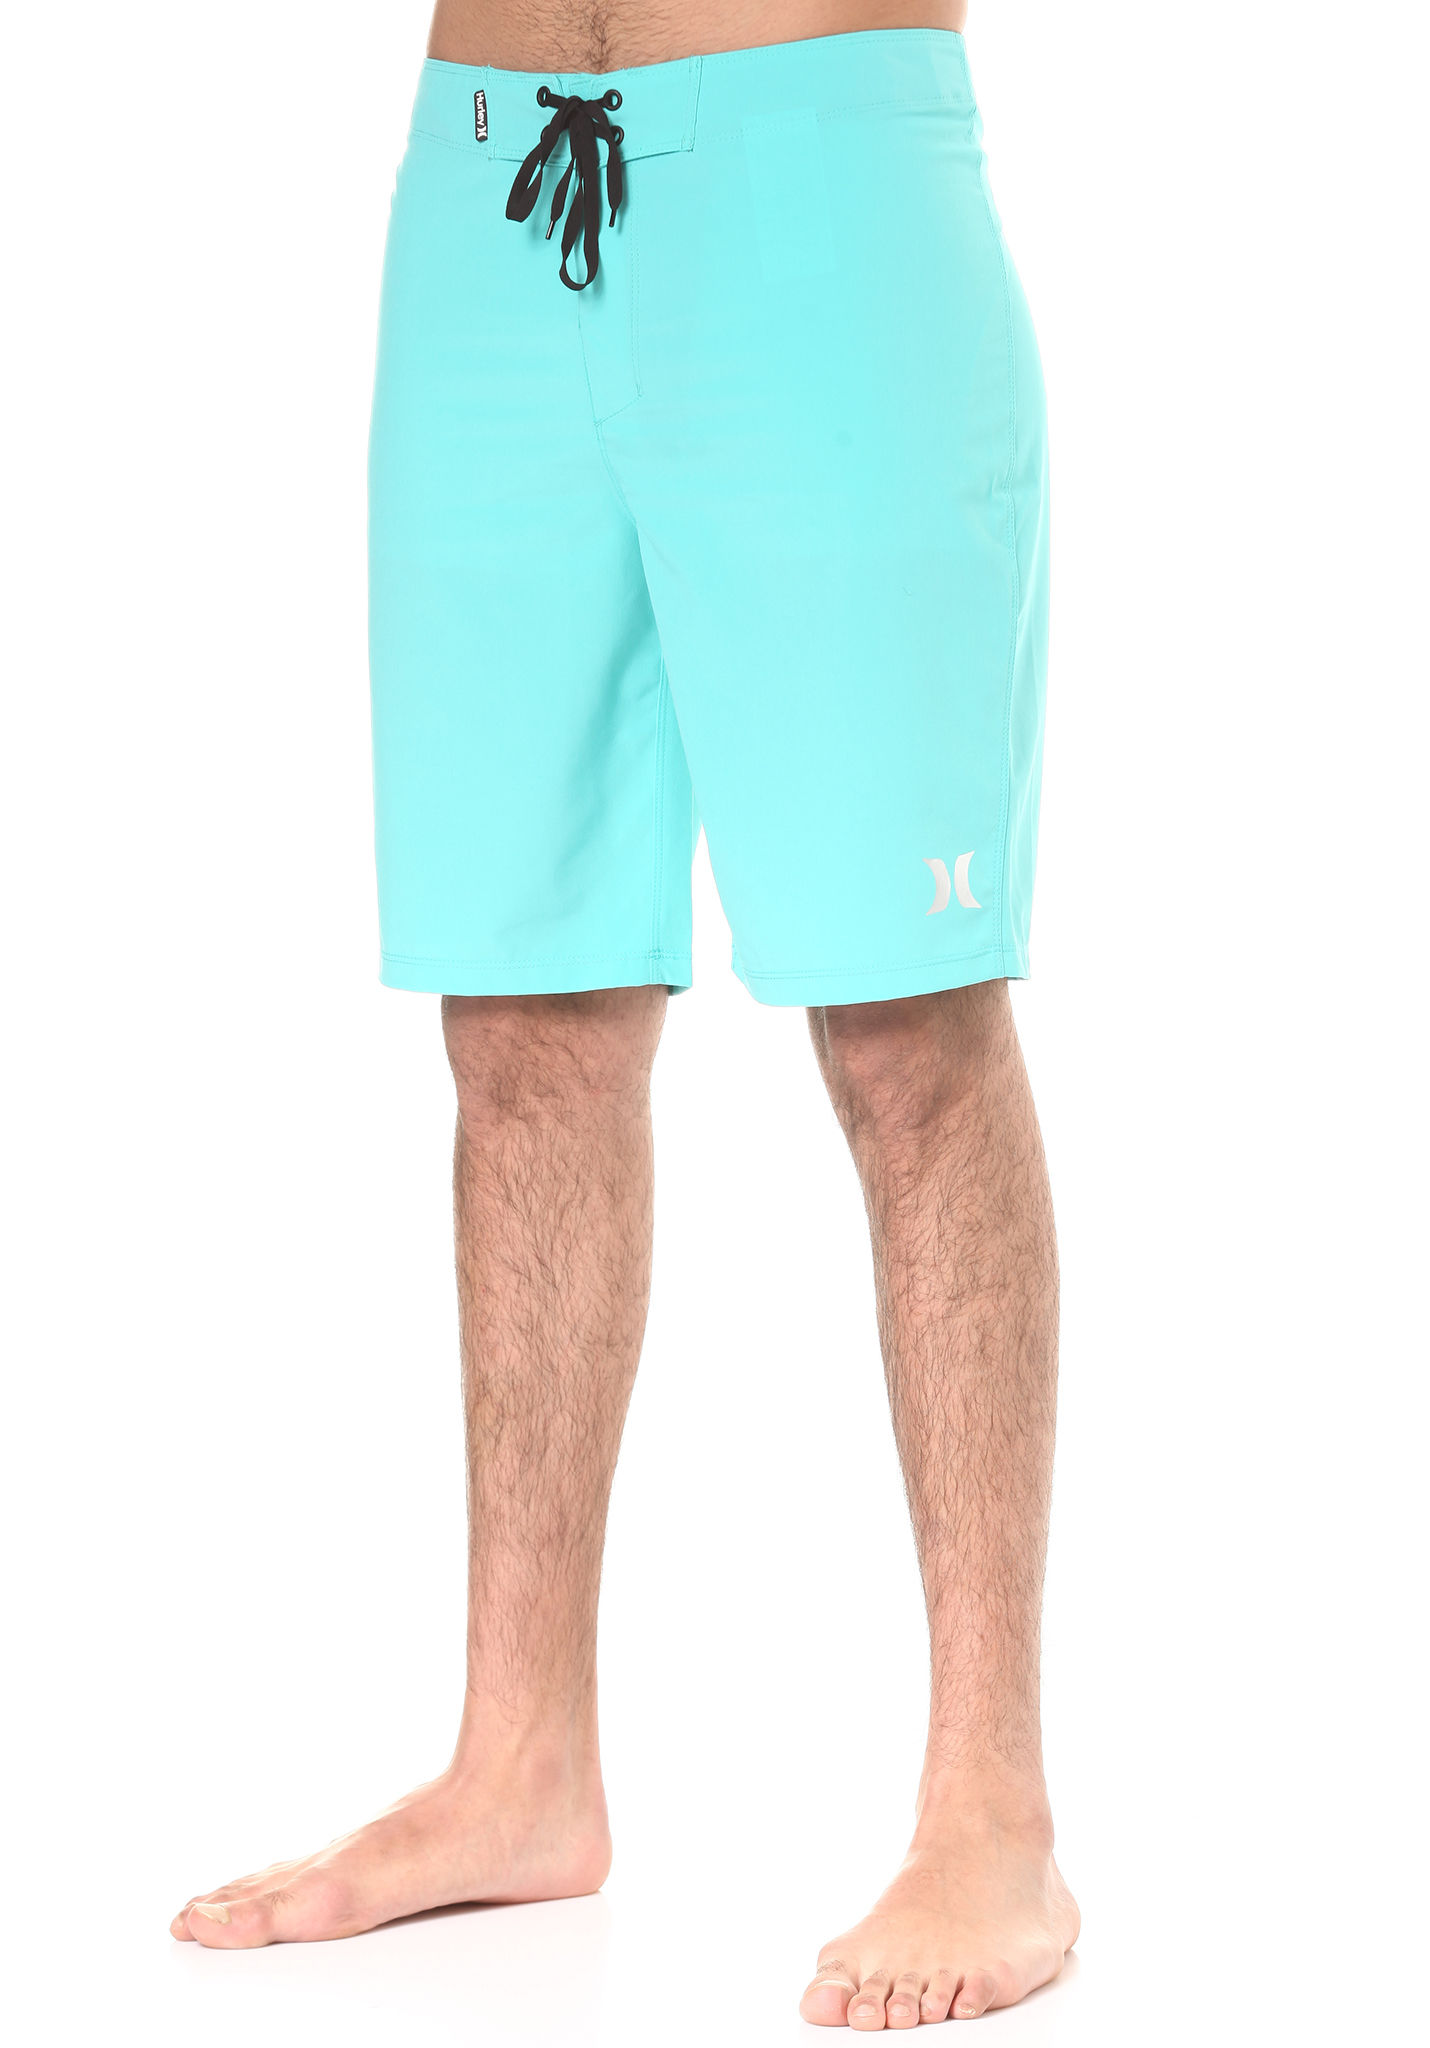 1be68b5fde Hurley Phantom One & Only 20' - Boardshorts for Men - Blue - Planet Sports